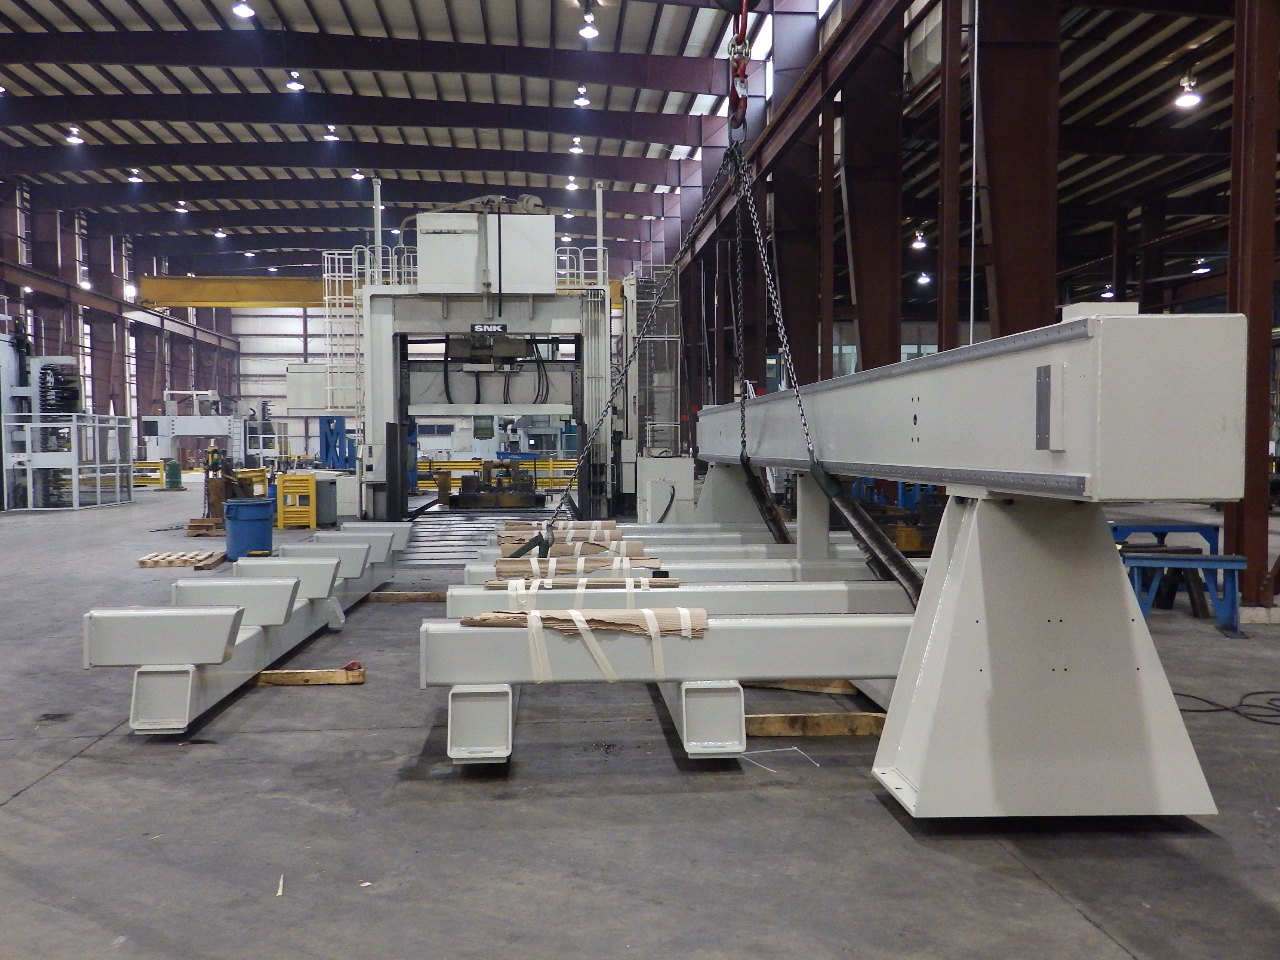 Cast vs. Fabricated Machine Tool Structure Design Impact on Supply Chain Design, Picture 2 - Fabricated Machine Structure